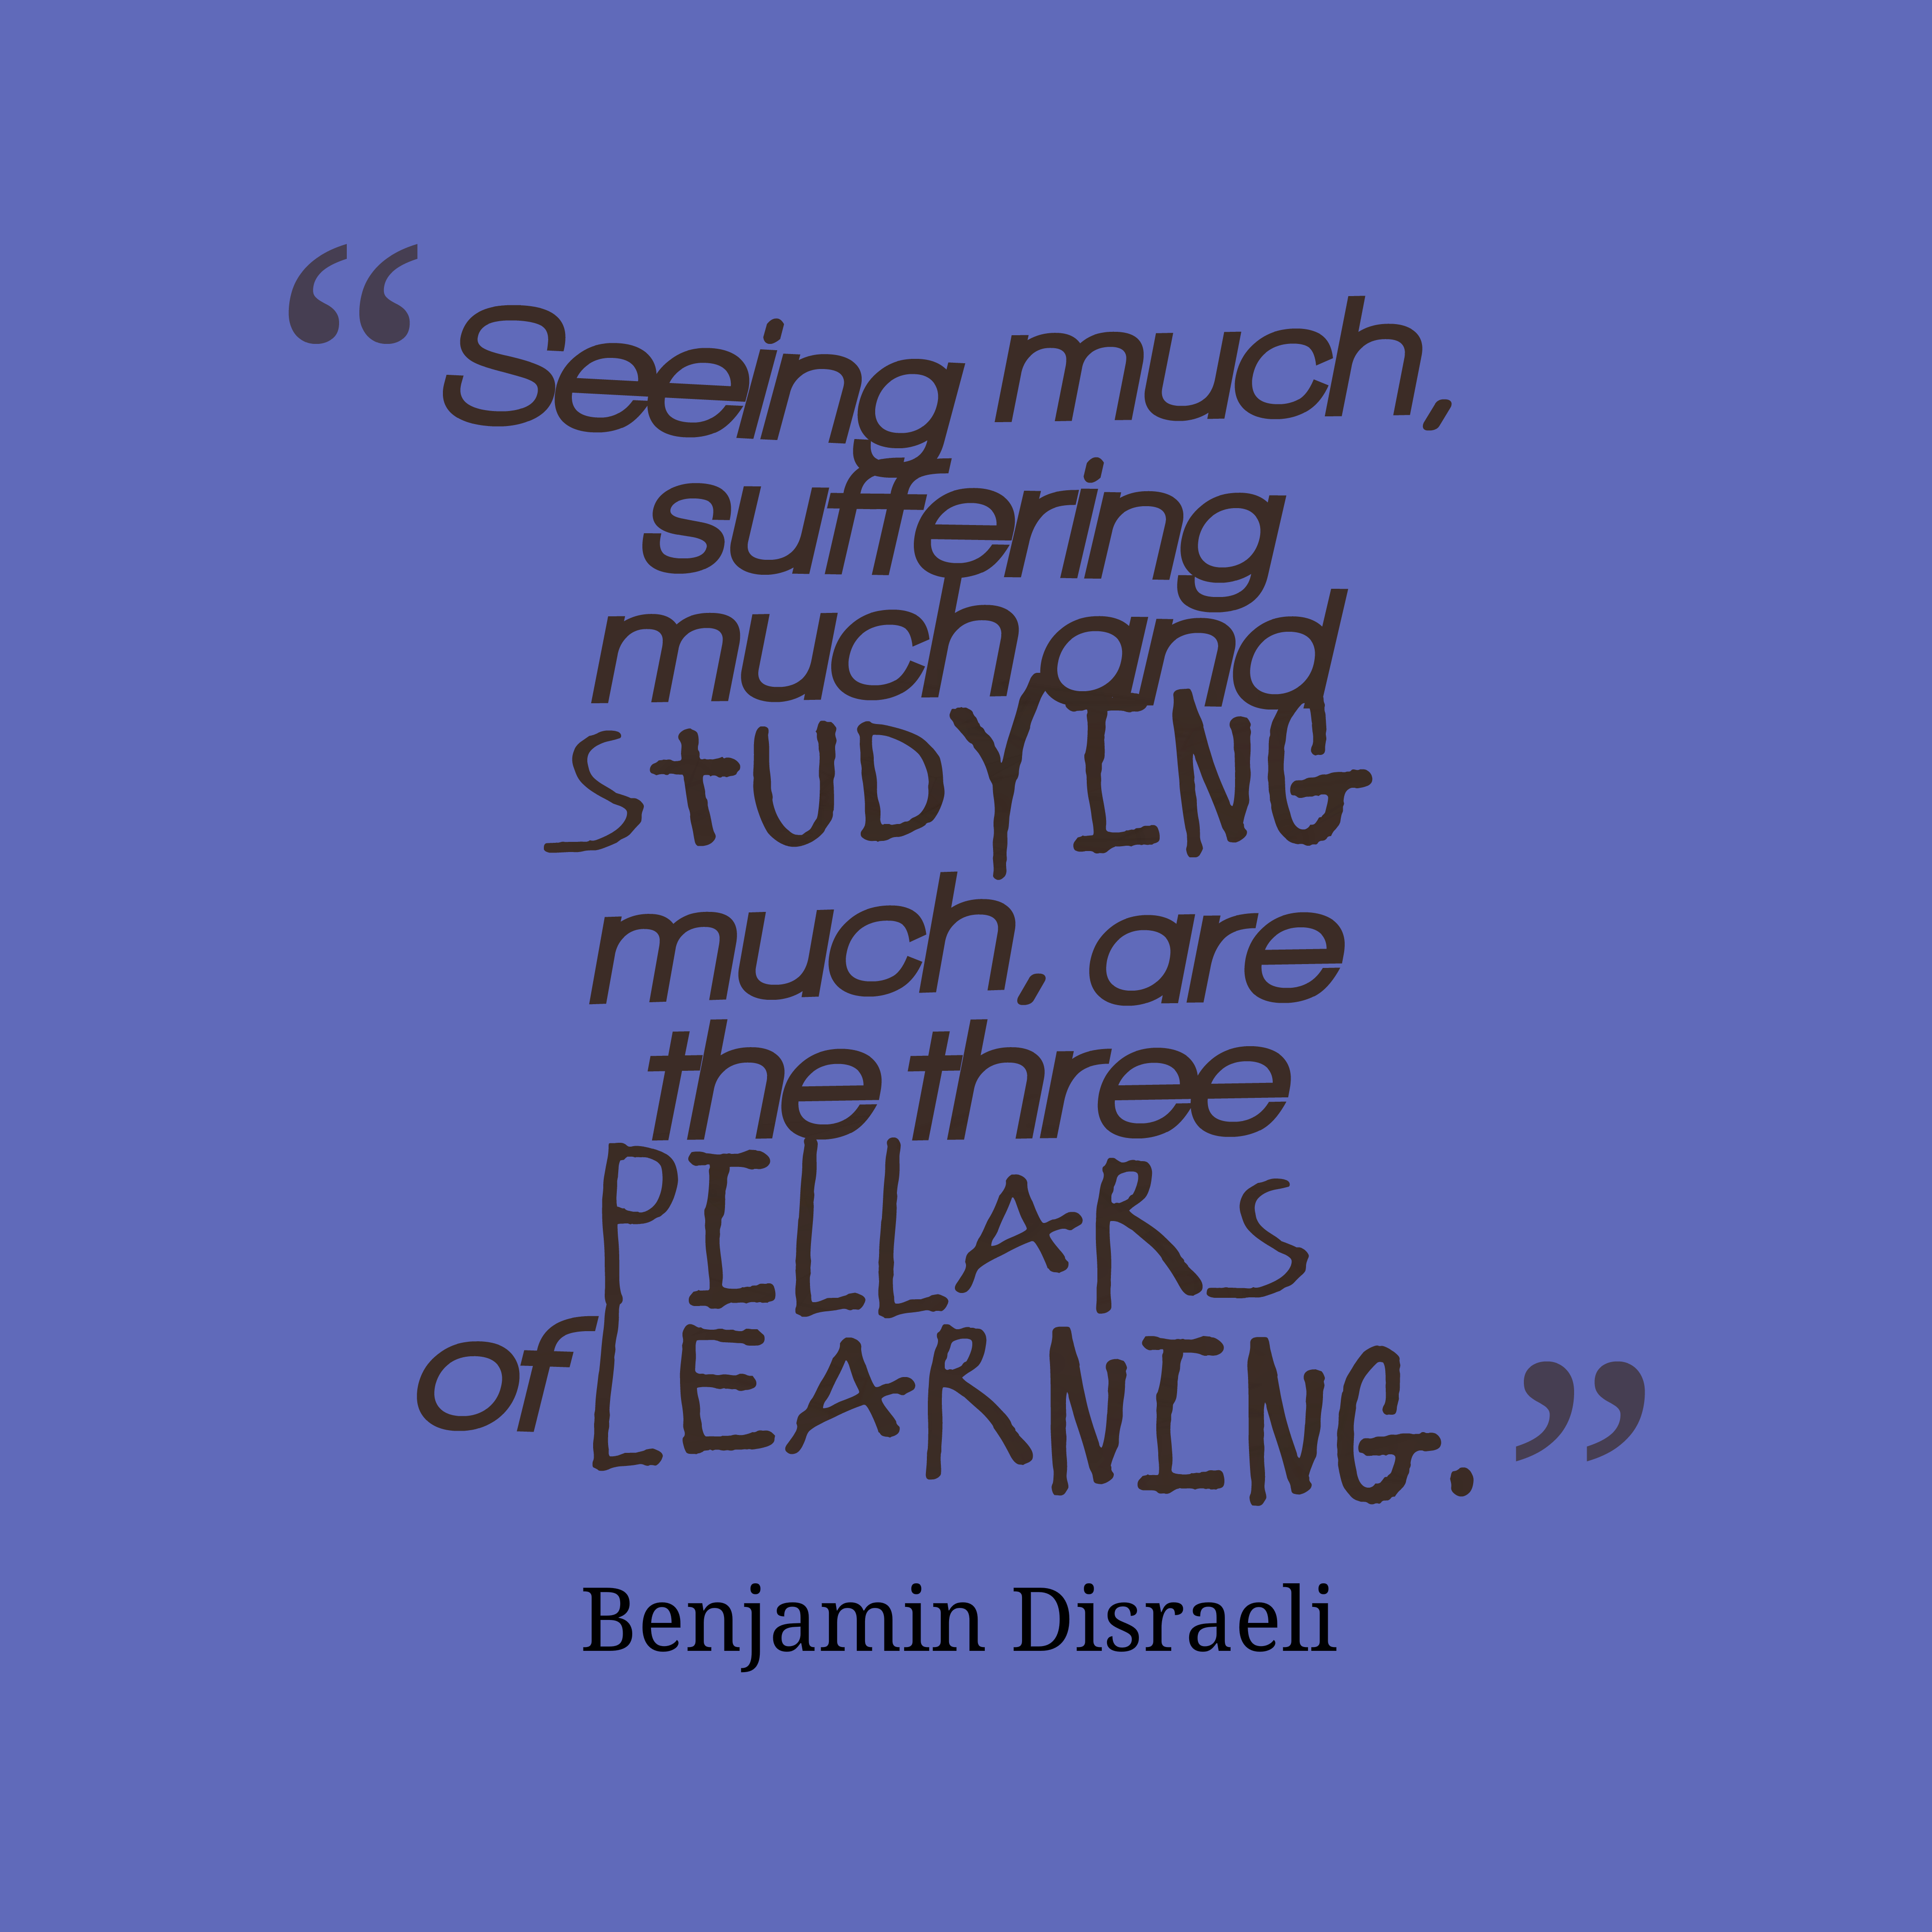 Quotes image of Seeing much, suffering much and studying much, are the three pillars of learning.